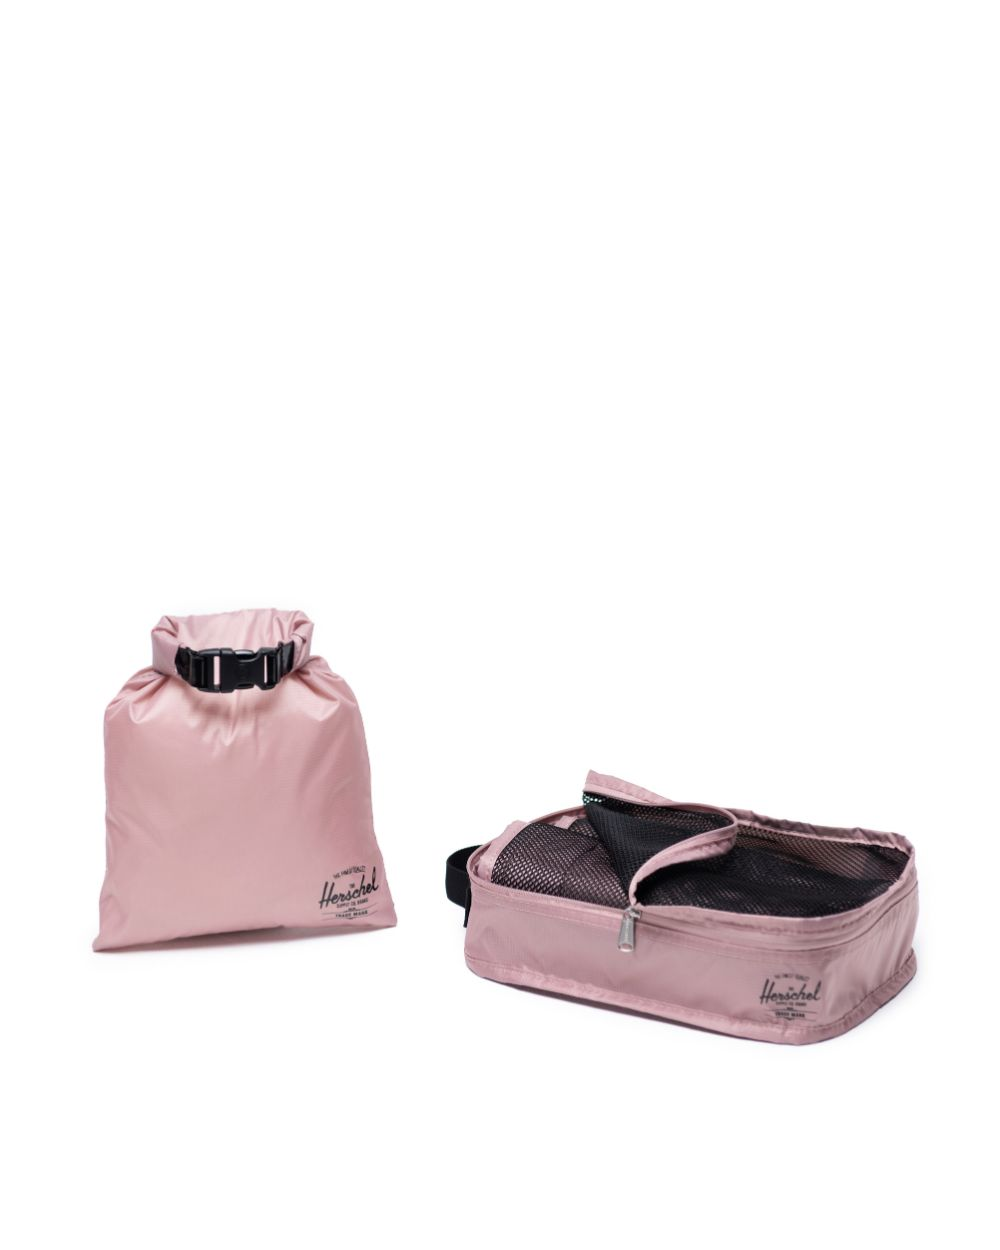 Herschel travel organisers - packing cubes and dry bag in light pink